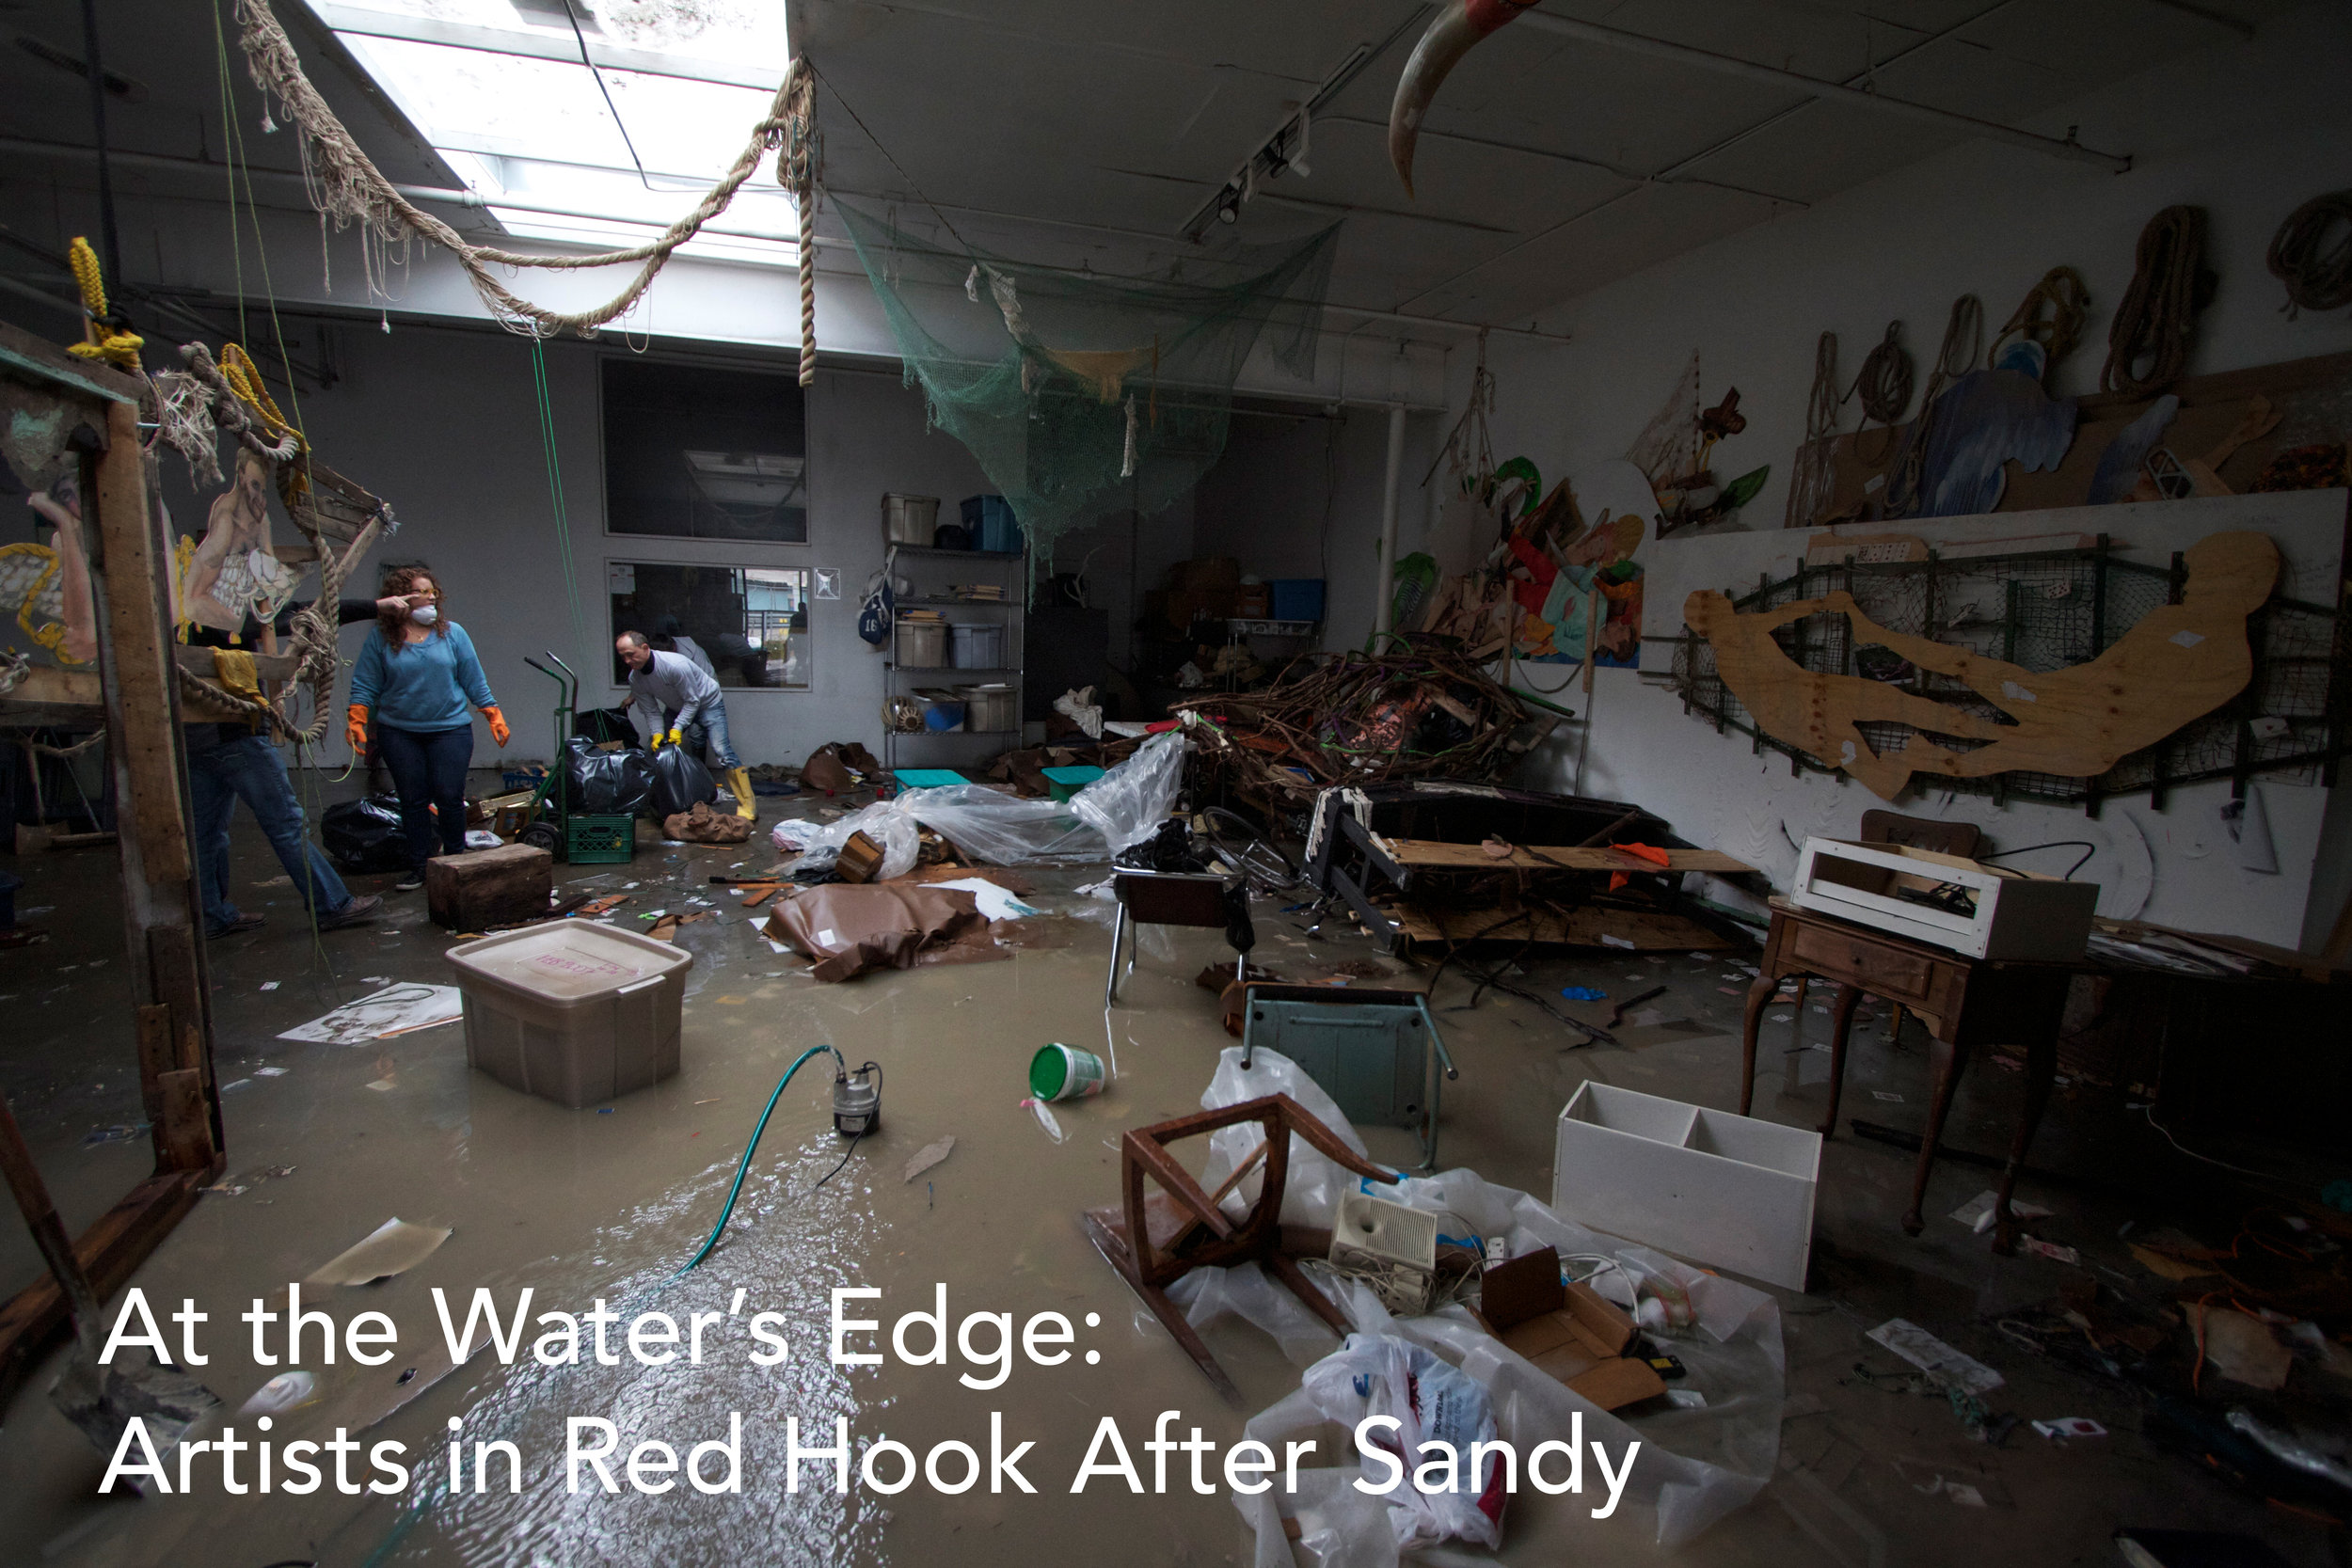 At the Water's Edge: Artists in Red Hook After Sandy - It's been five years since Superstorm Sandy hit New York City and flooded Red Hook. We're marking the anniversary by sharing this multimedia story we created several days after the storm about artists in Red Hook affected by the flooding. Click below to hear Z Behl, Benh Zeitlin, and Dustin Yellin of Pioneer Works talk about their experiences in Sandy's aftermath.